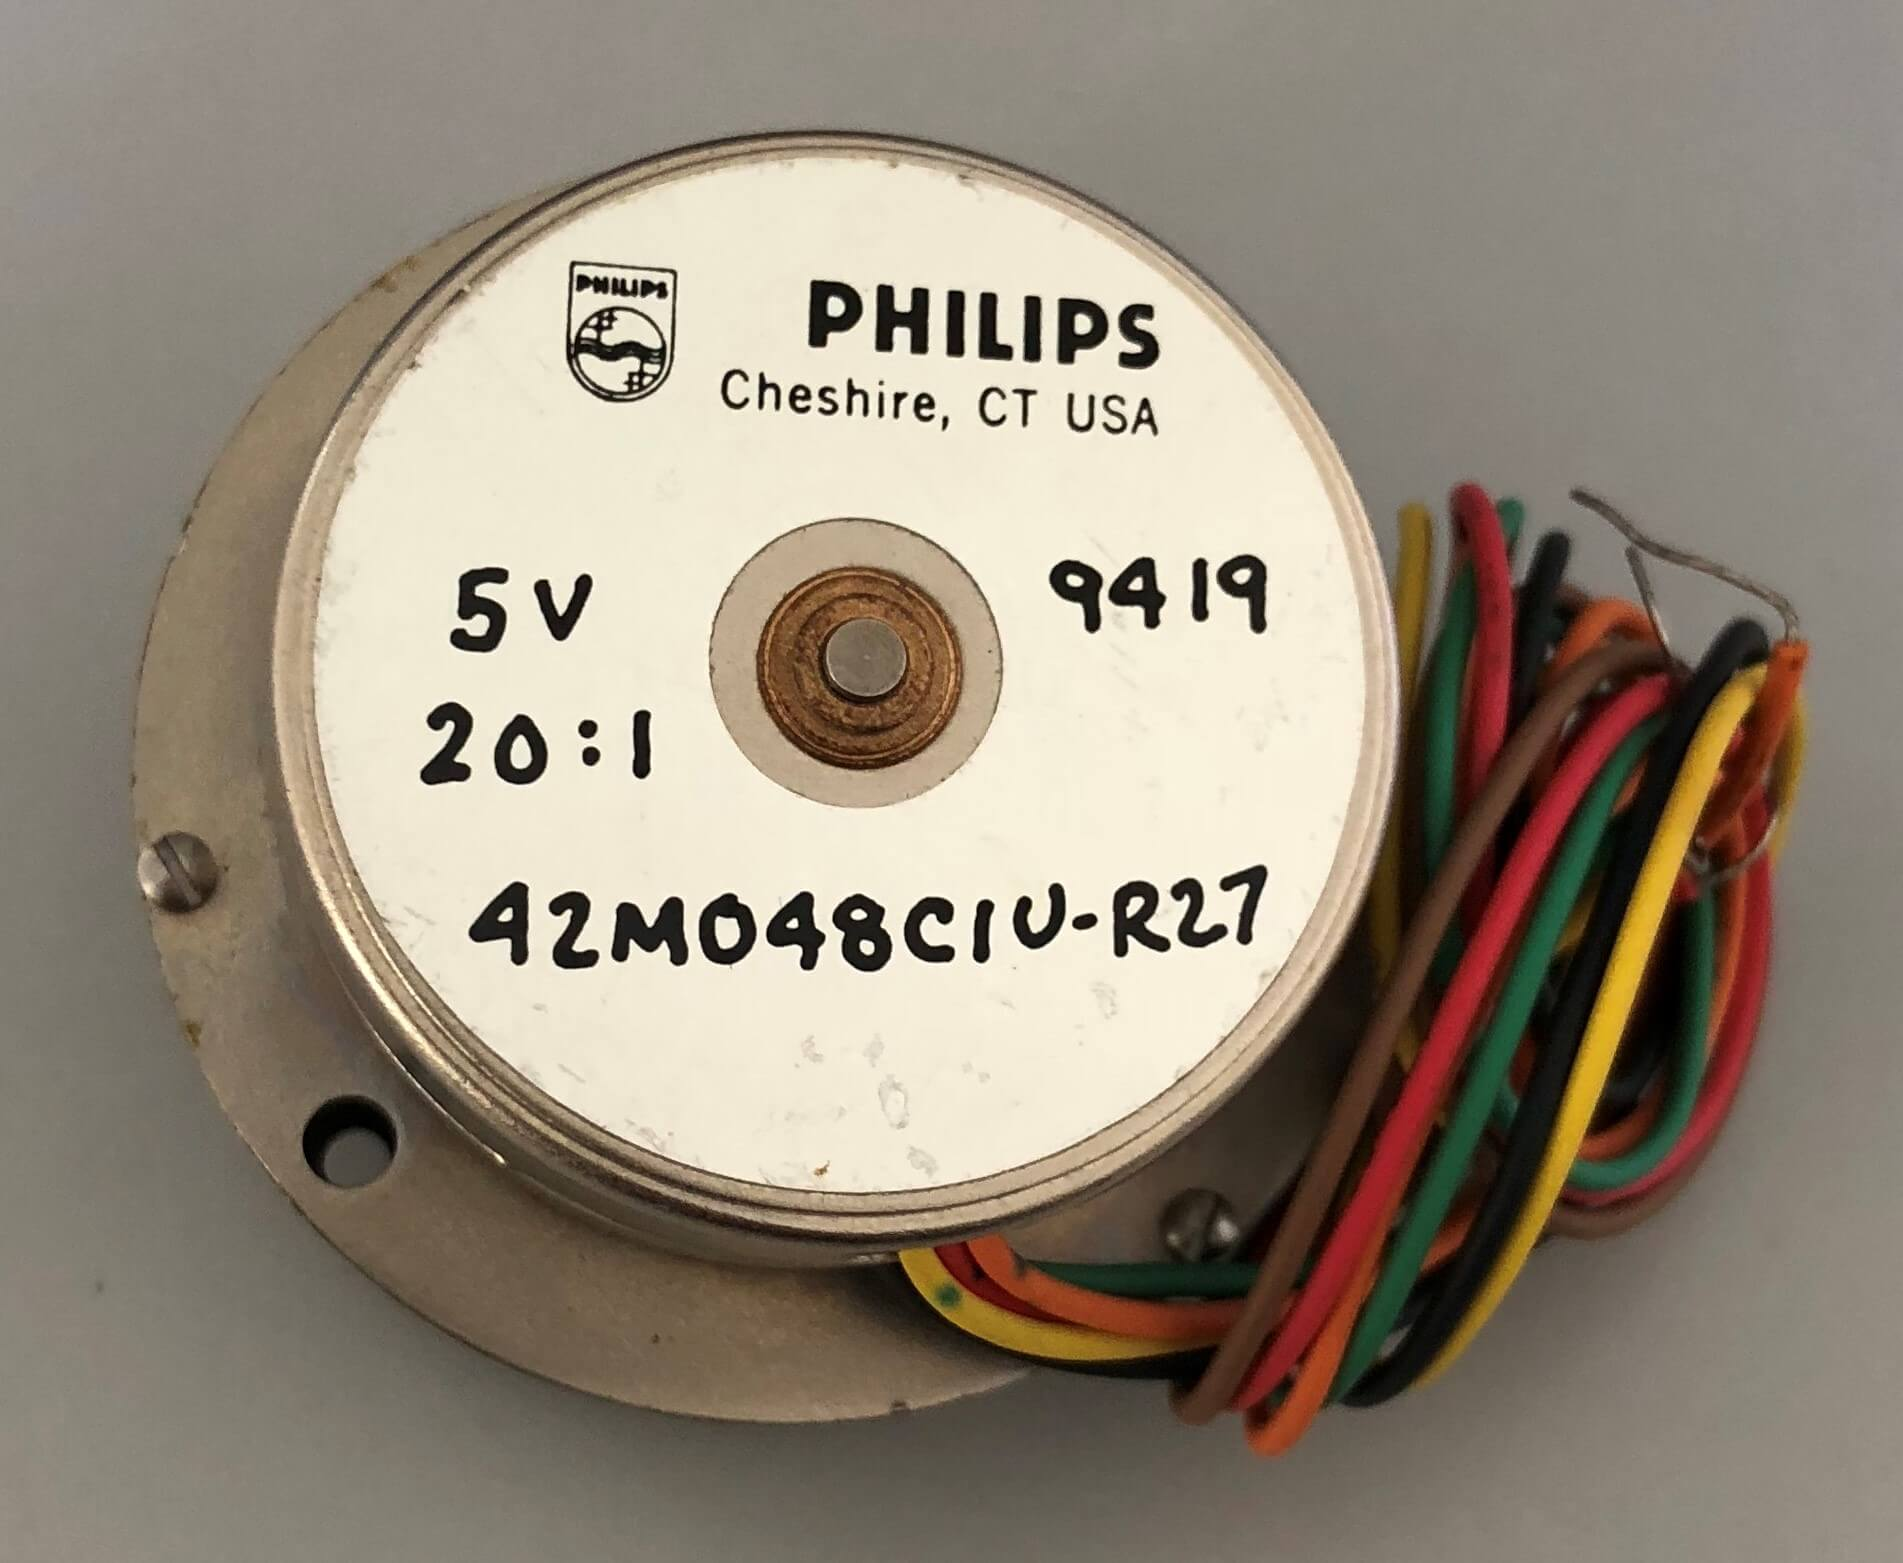 Stepper Motors - 42M048C1U-R27